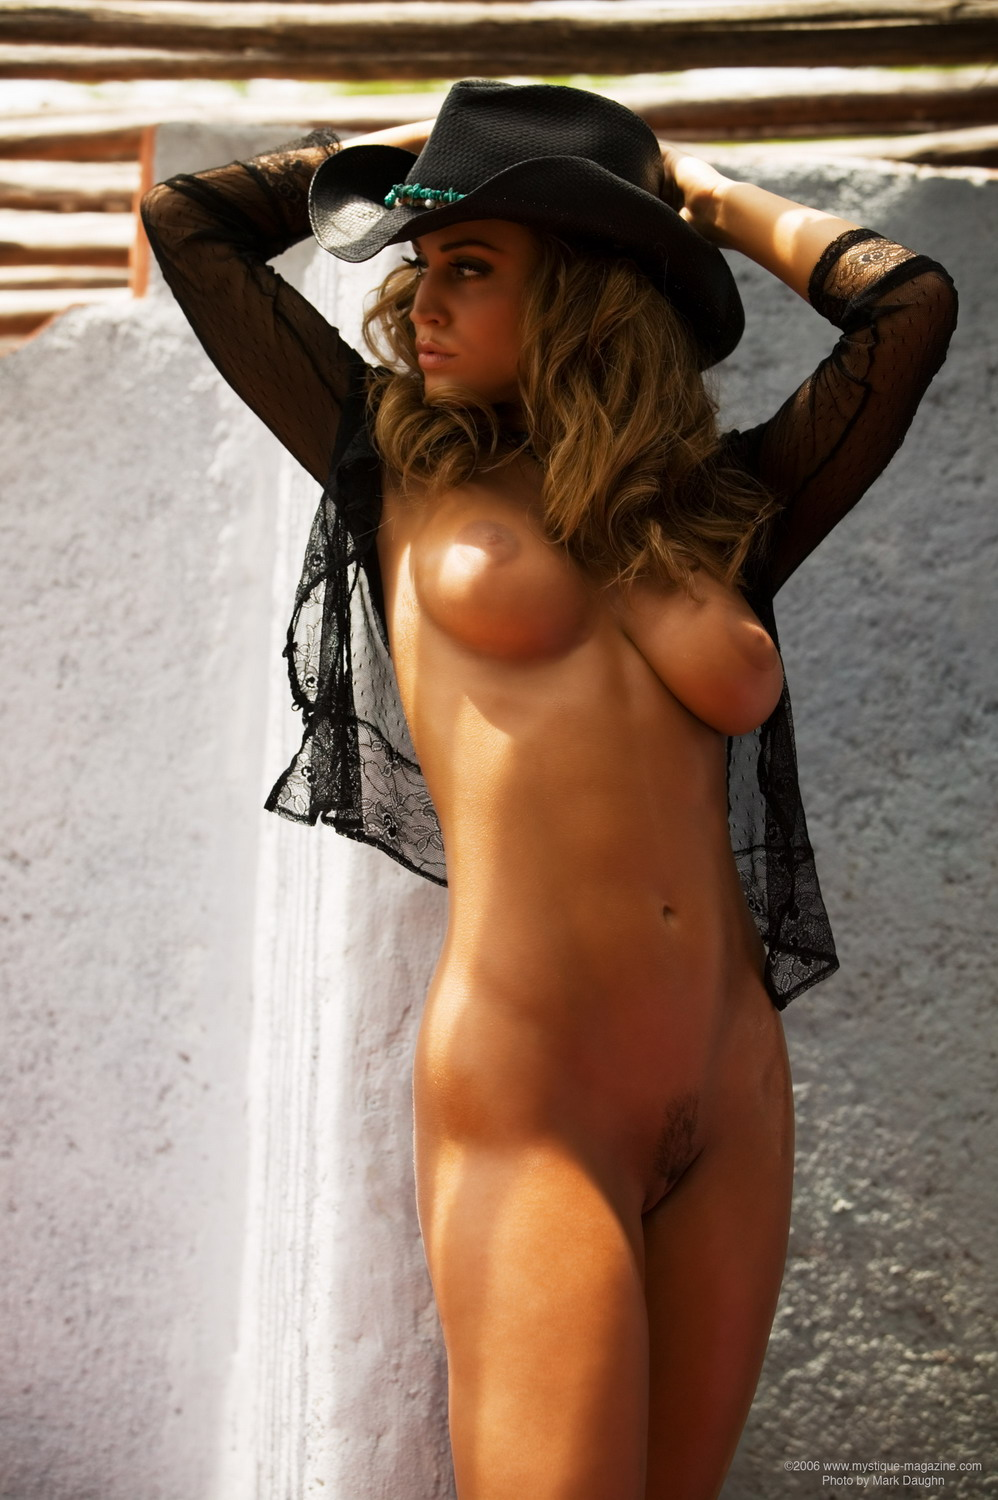 Martinezporno emage nude girls with cowboy hat